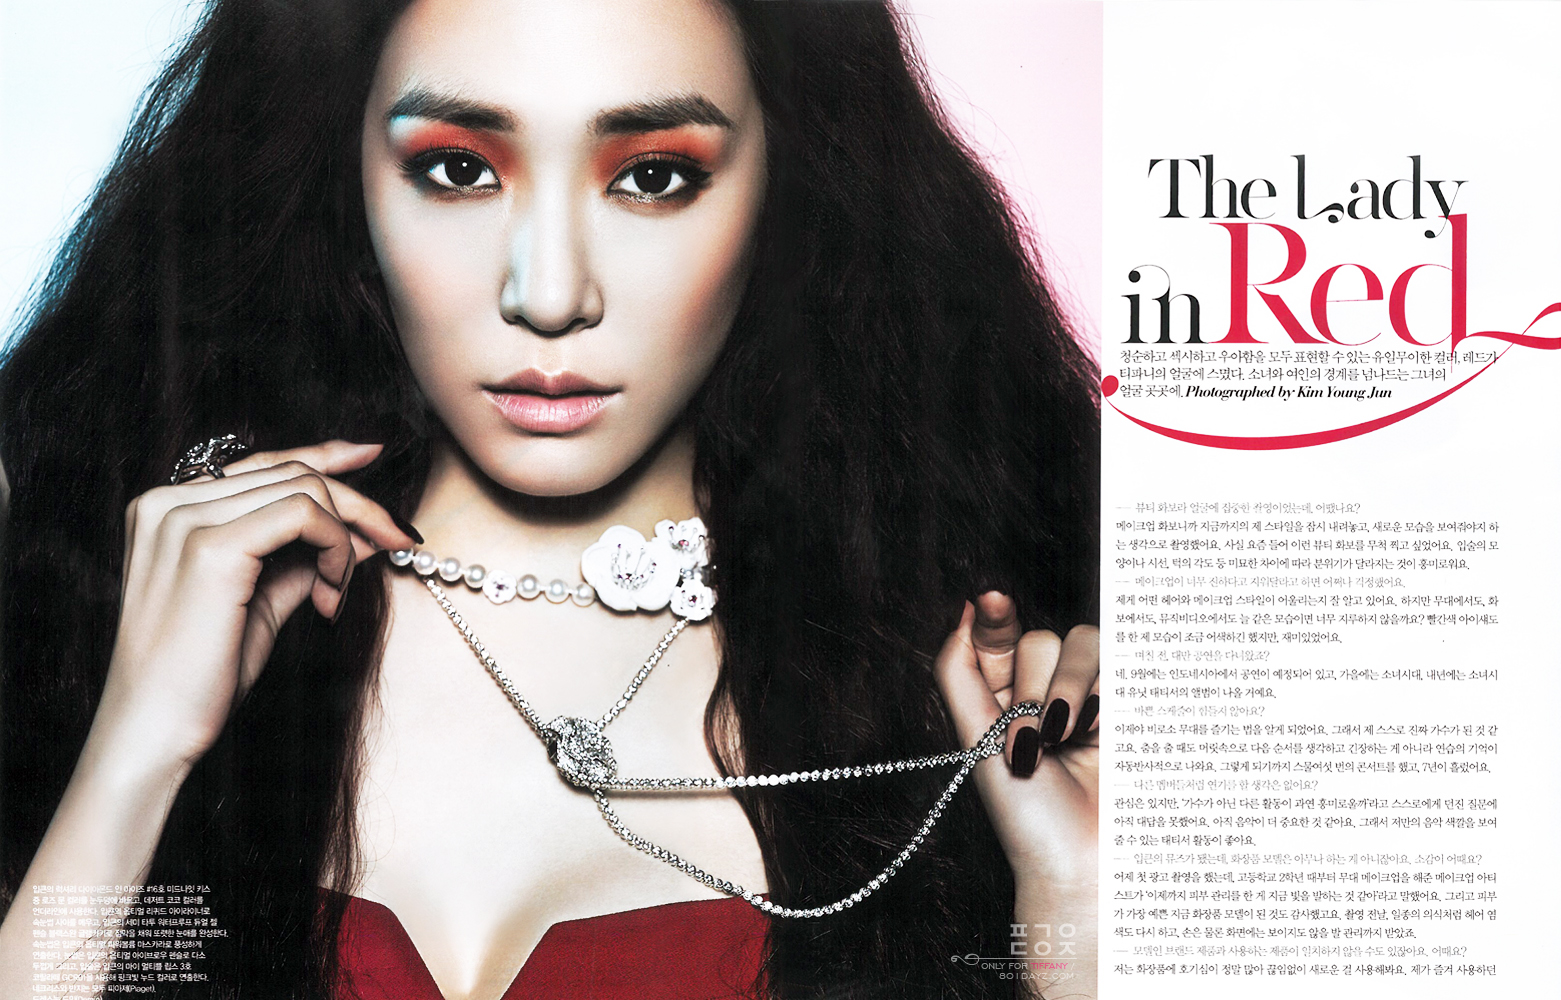 Allure: Because it's a beauty photoshoot, it focused on your face; how was it? Tiffany: Because it was a makeup photoshoot, I put my own style down for a ...